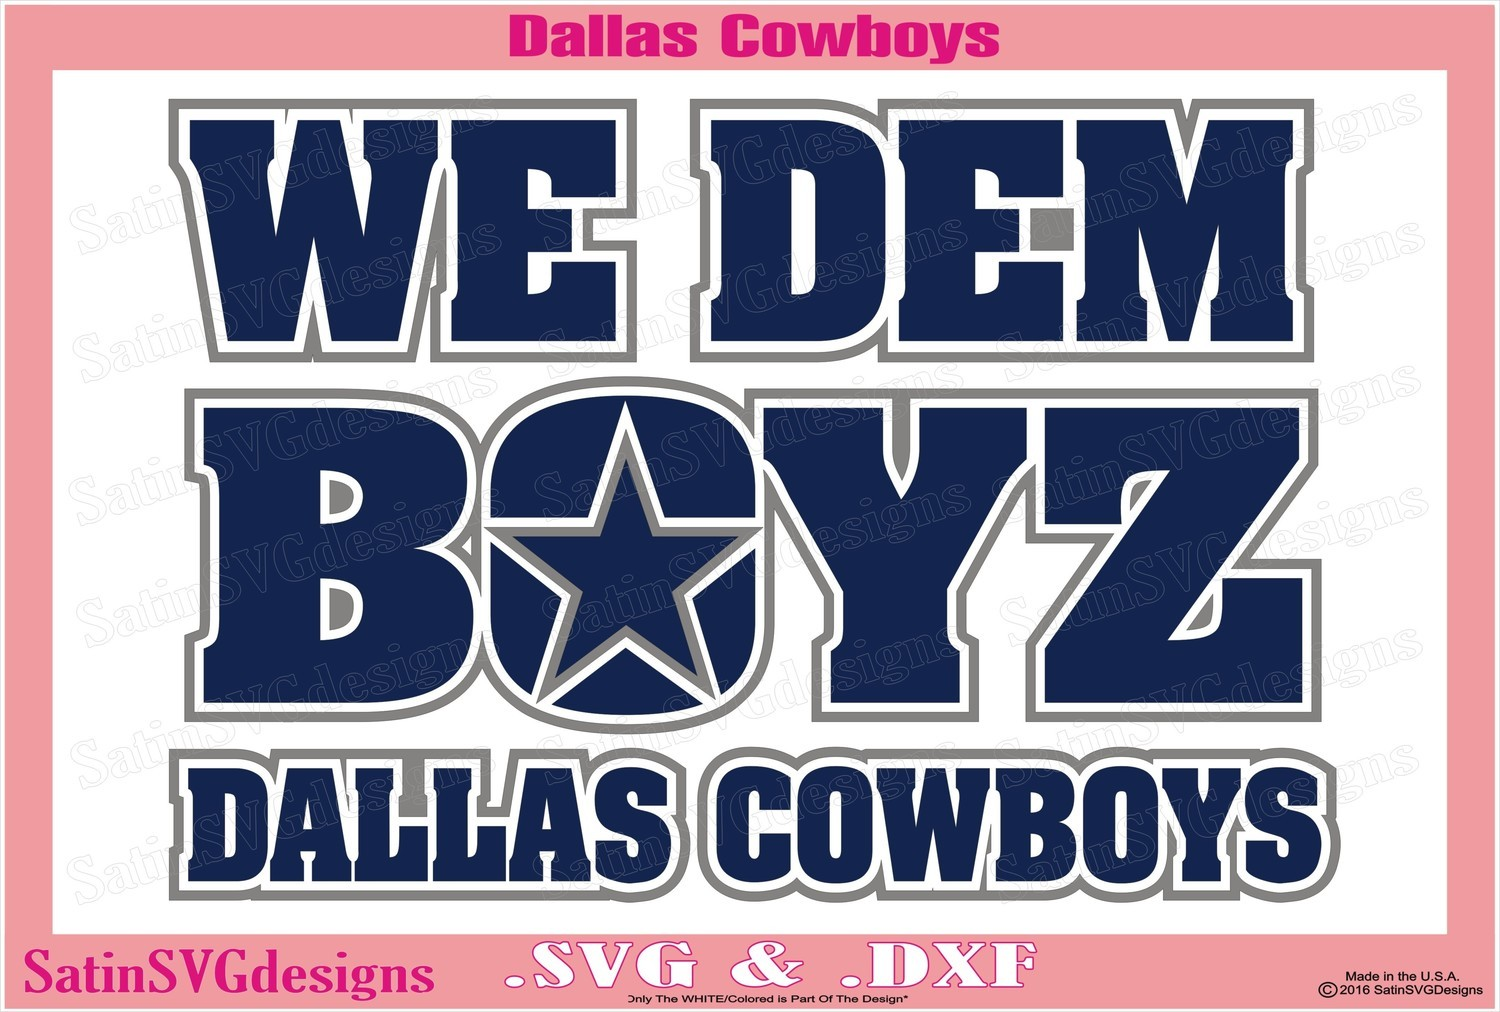 Dallas Cowboys We Dem Boyz Design SVG Files, Cricut, Silhouette Studio, Digital Cut Files